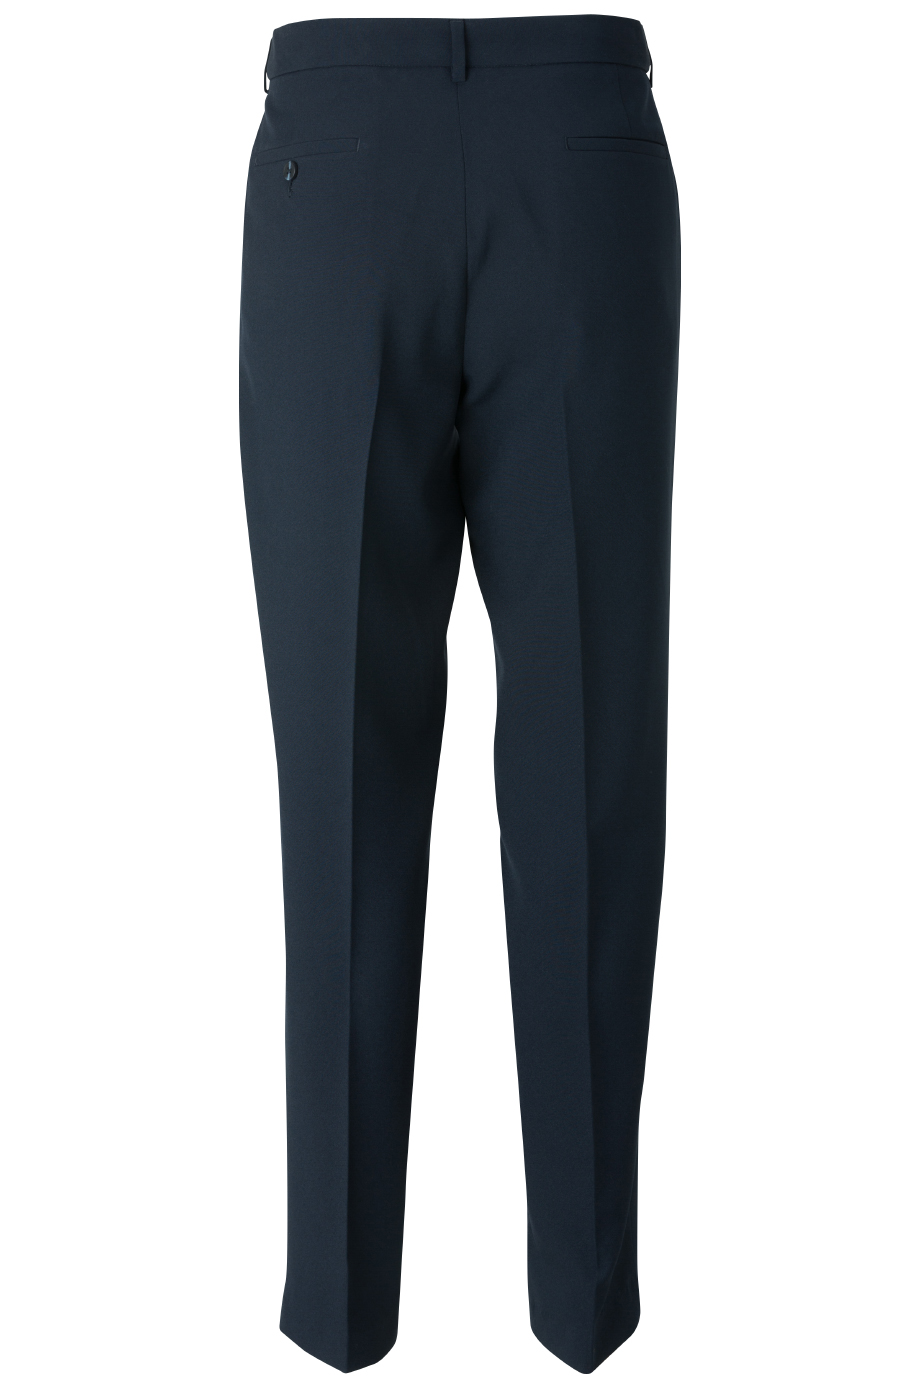 ESSENTIAL FLAT FRONT PANT